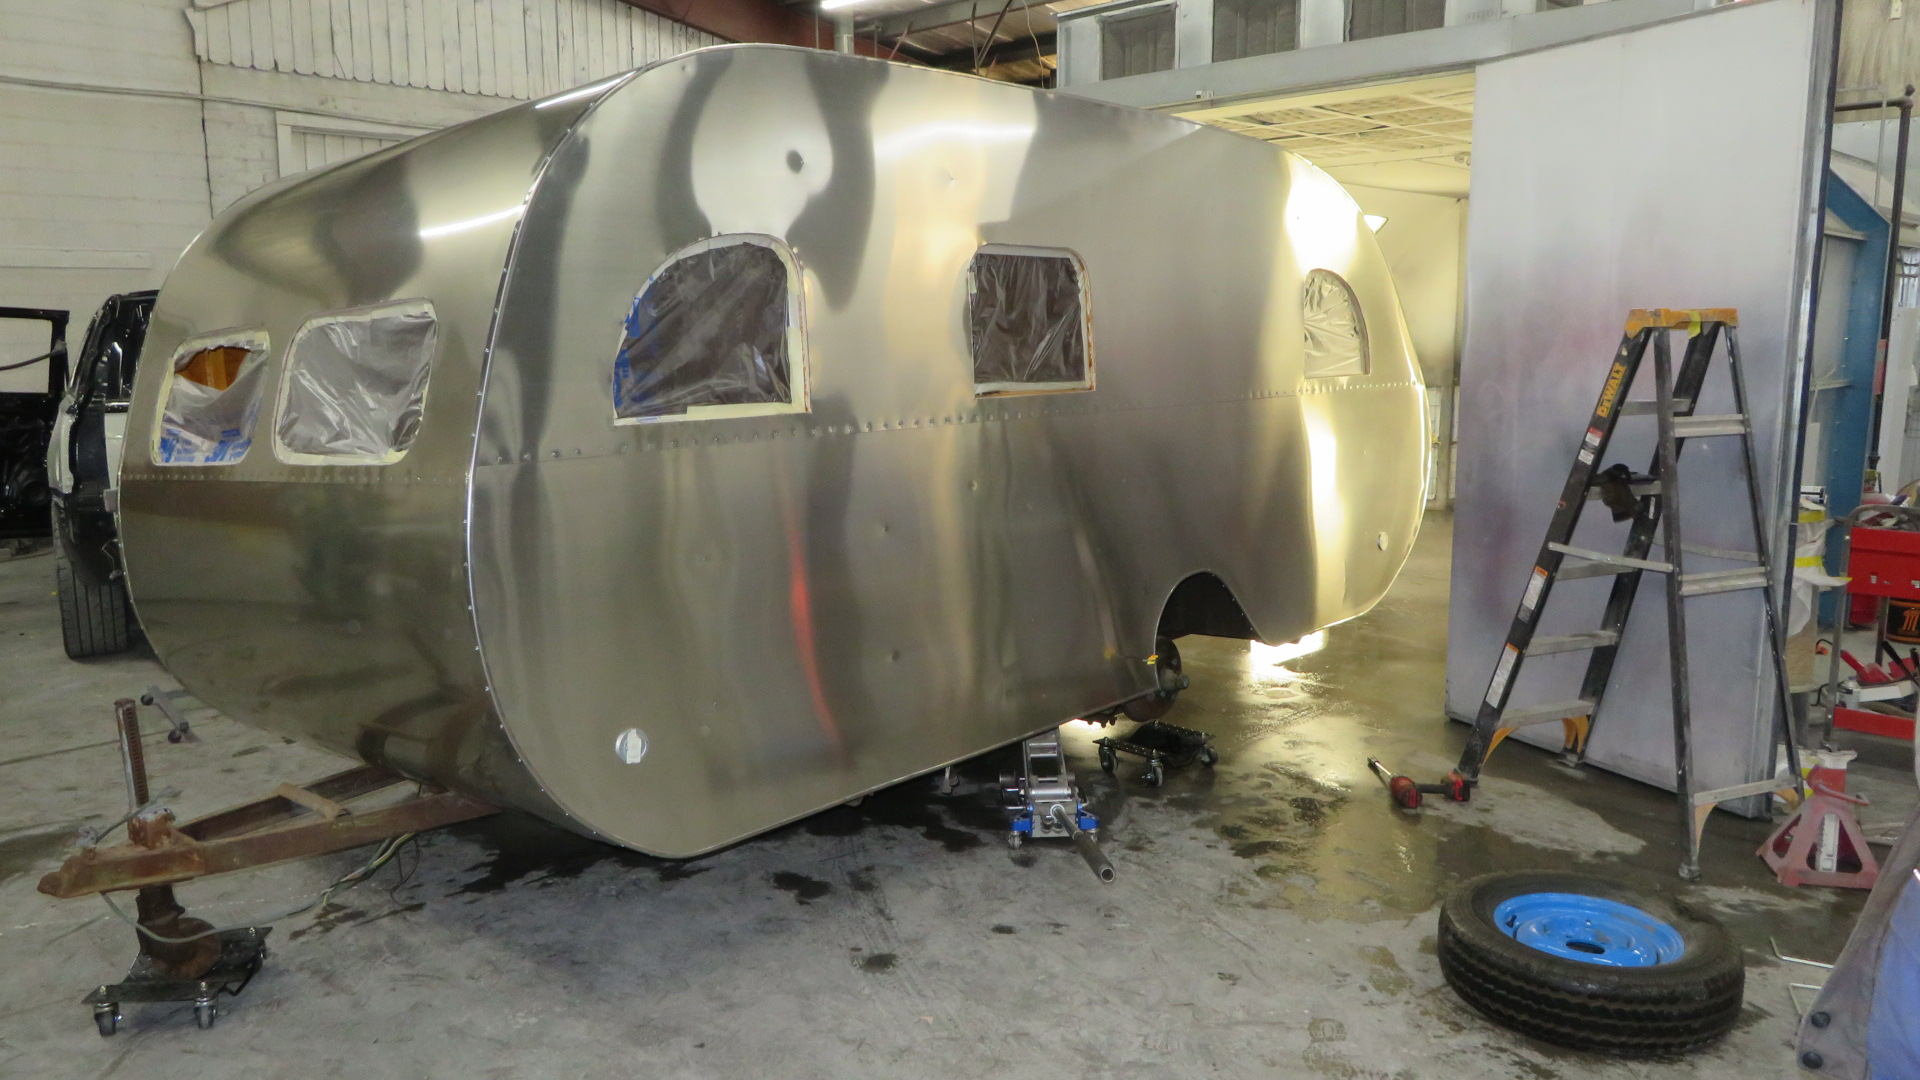 http://www.cannedhamtrailers.com/forum/47mainline/paintbooth.JPG